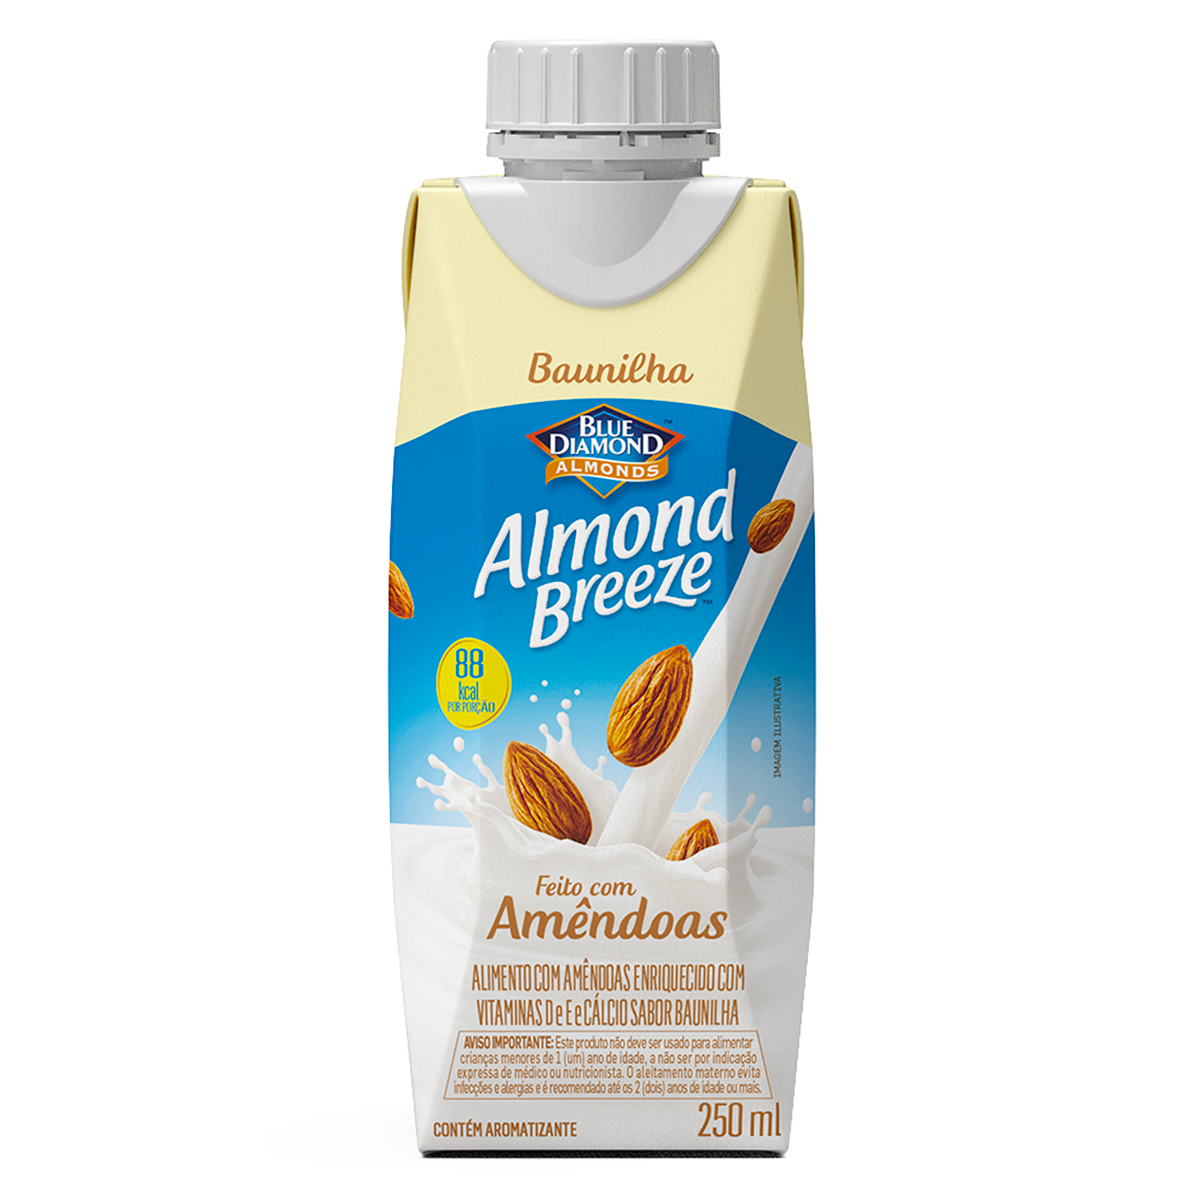 Bebida à Base de Amêndoa Baunilha Blue Diamond Almond Breeze Caixa 250ml